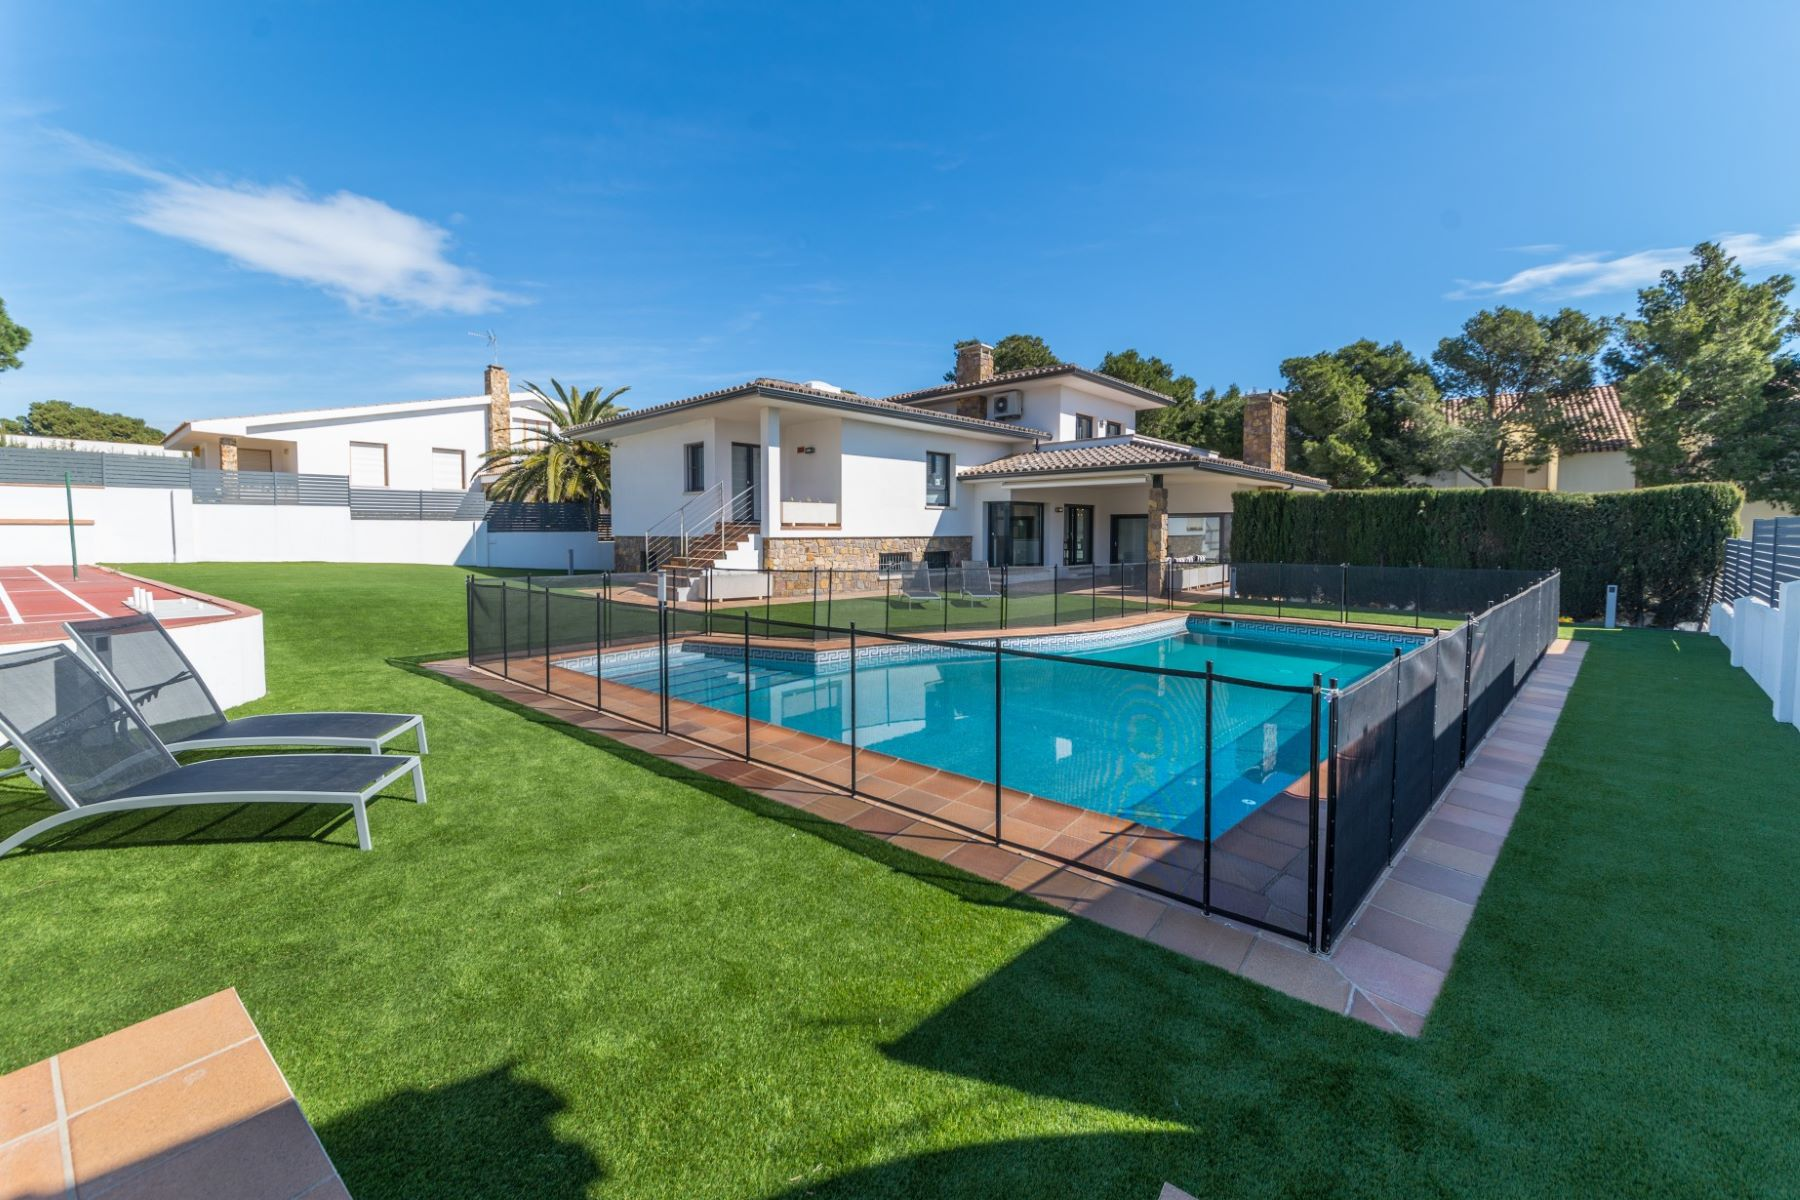 Single Family Home for Sale at Modern villa close to the beach and the town centre of L'Escala L Escala, Costa Brava, 17130 Spain